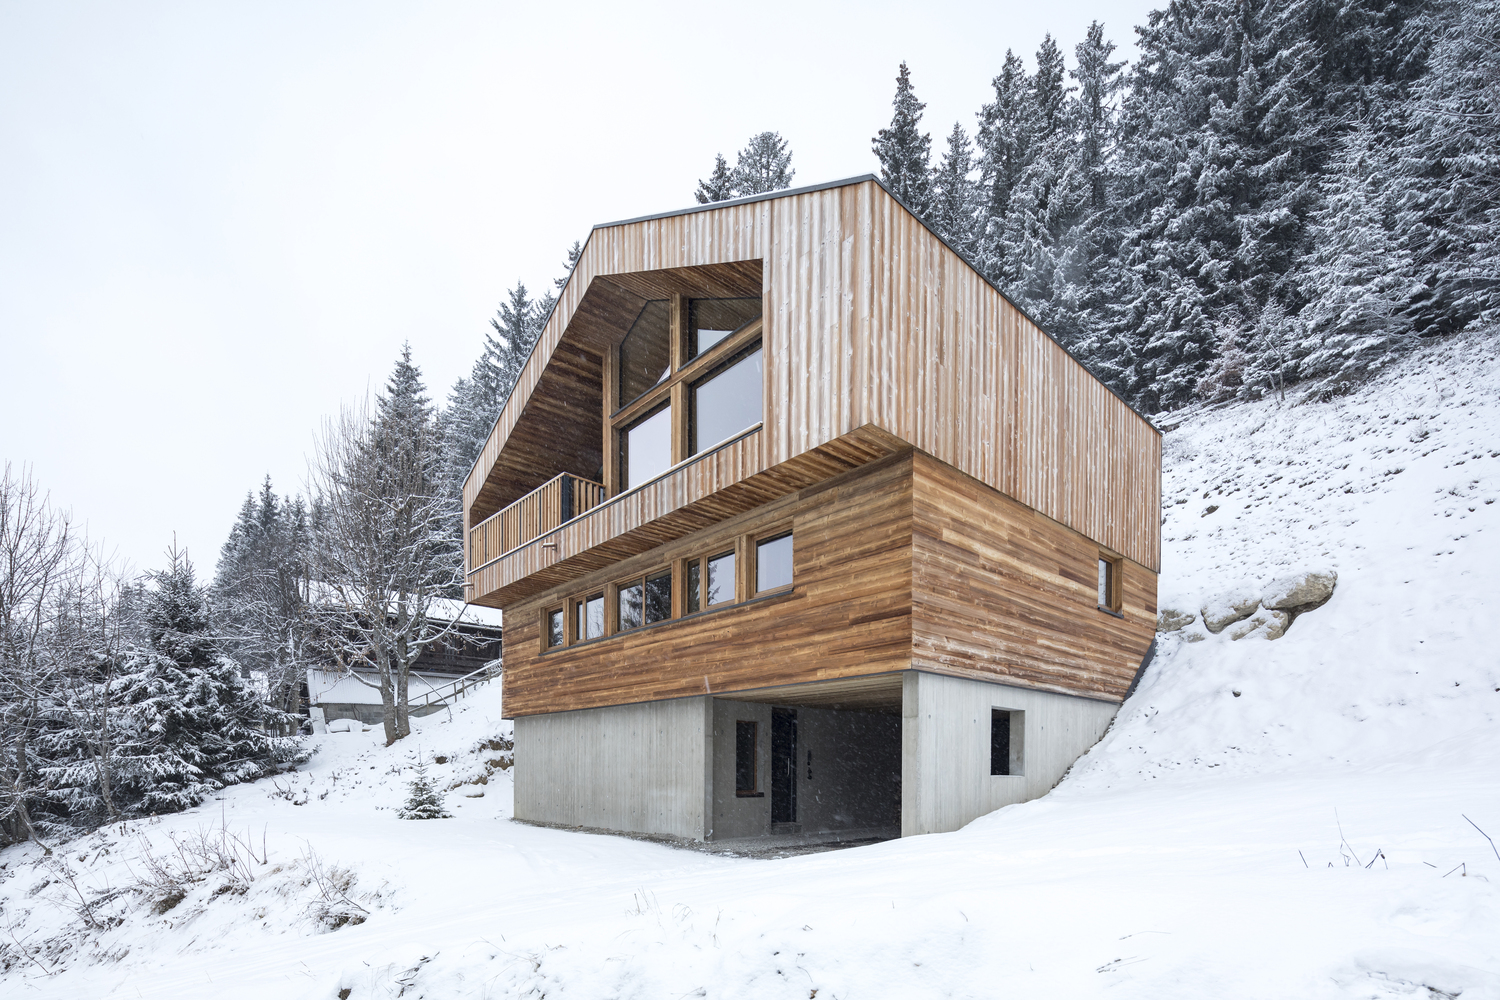 Studio razavi architecture 39 s 39 mountain house 39 avoids for Architectural design mountain home